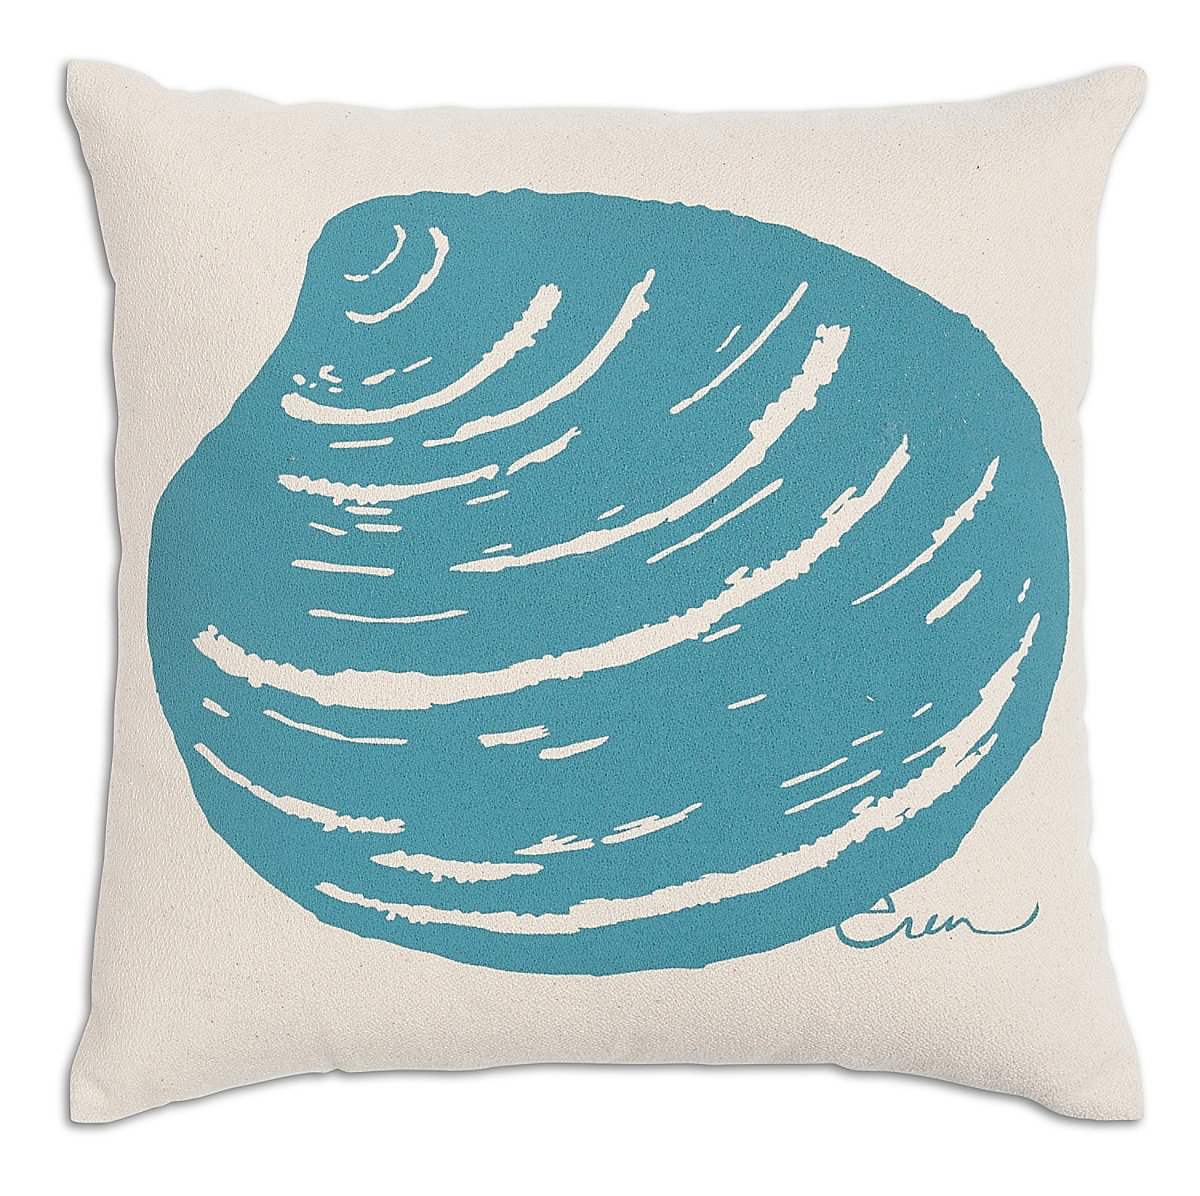 "20"" x 20"" - Clam Pillow: Surf"